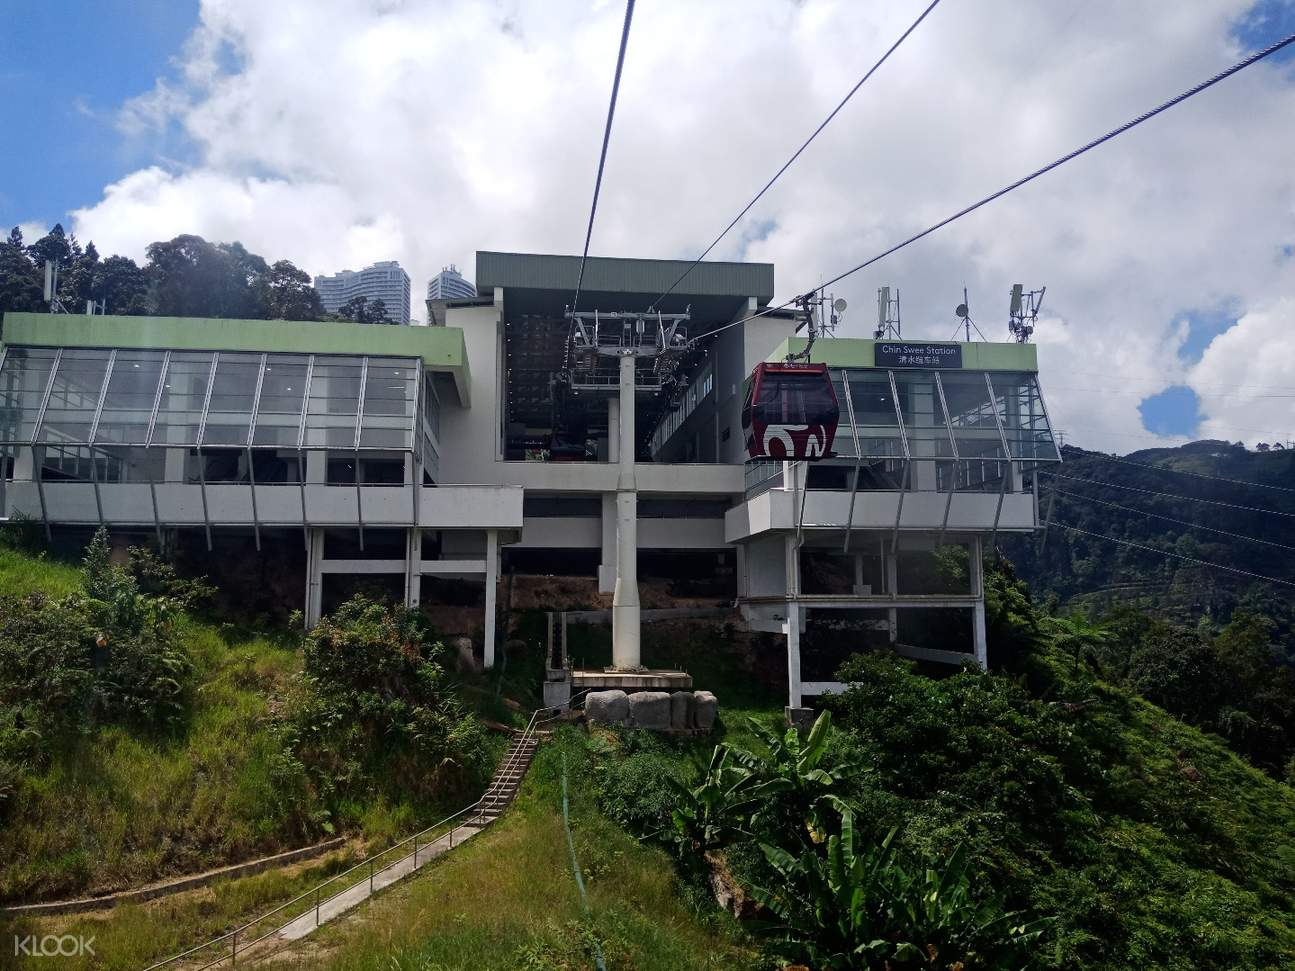 chinswee station at genting skyway